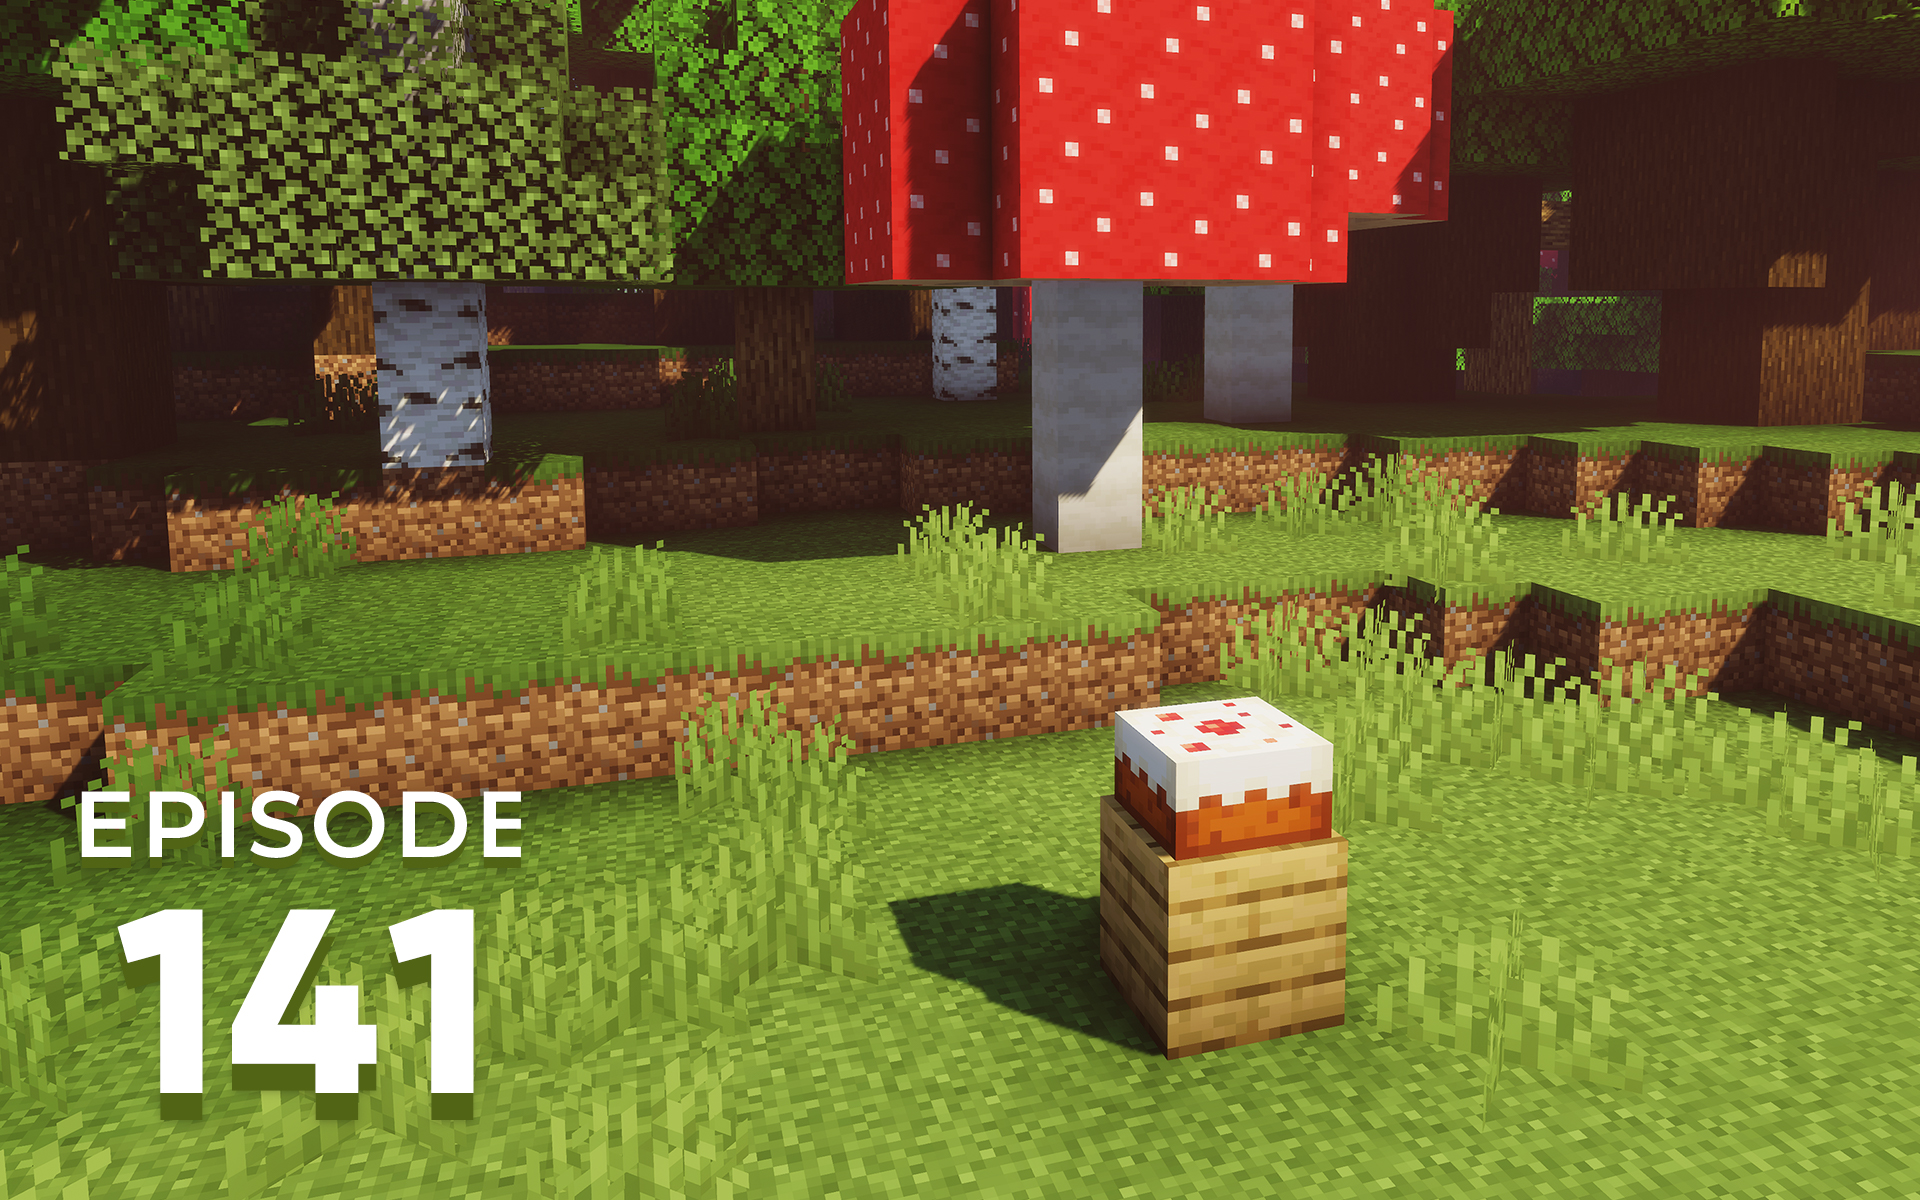 The Spawn Chunks 141: A Birthday Without Candles